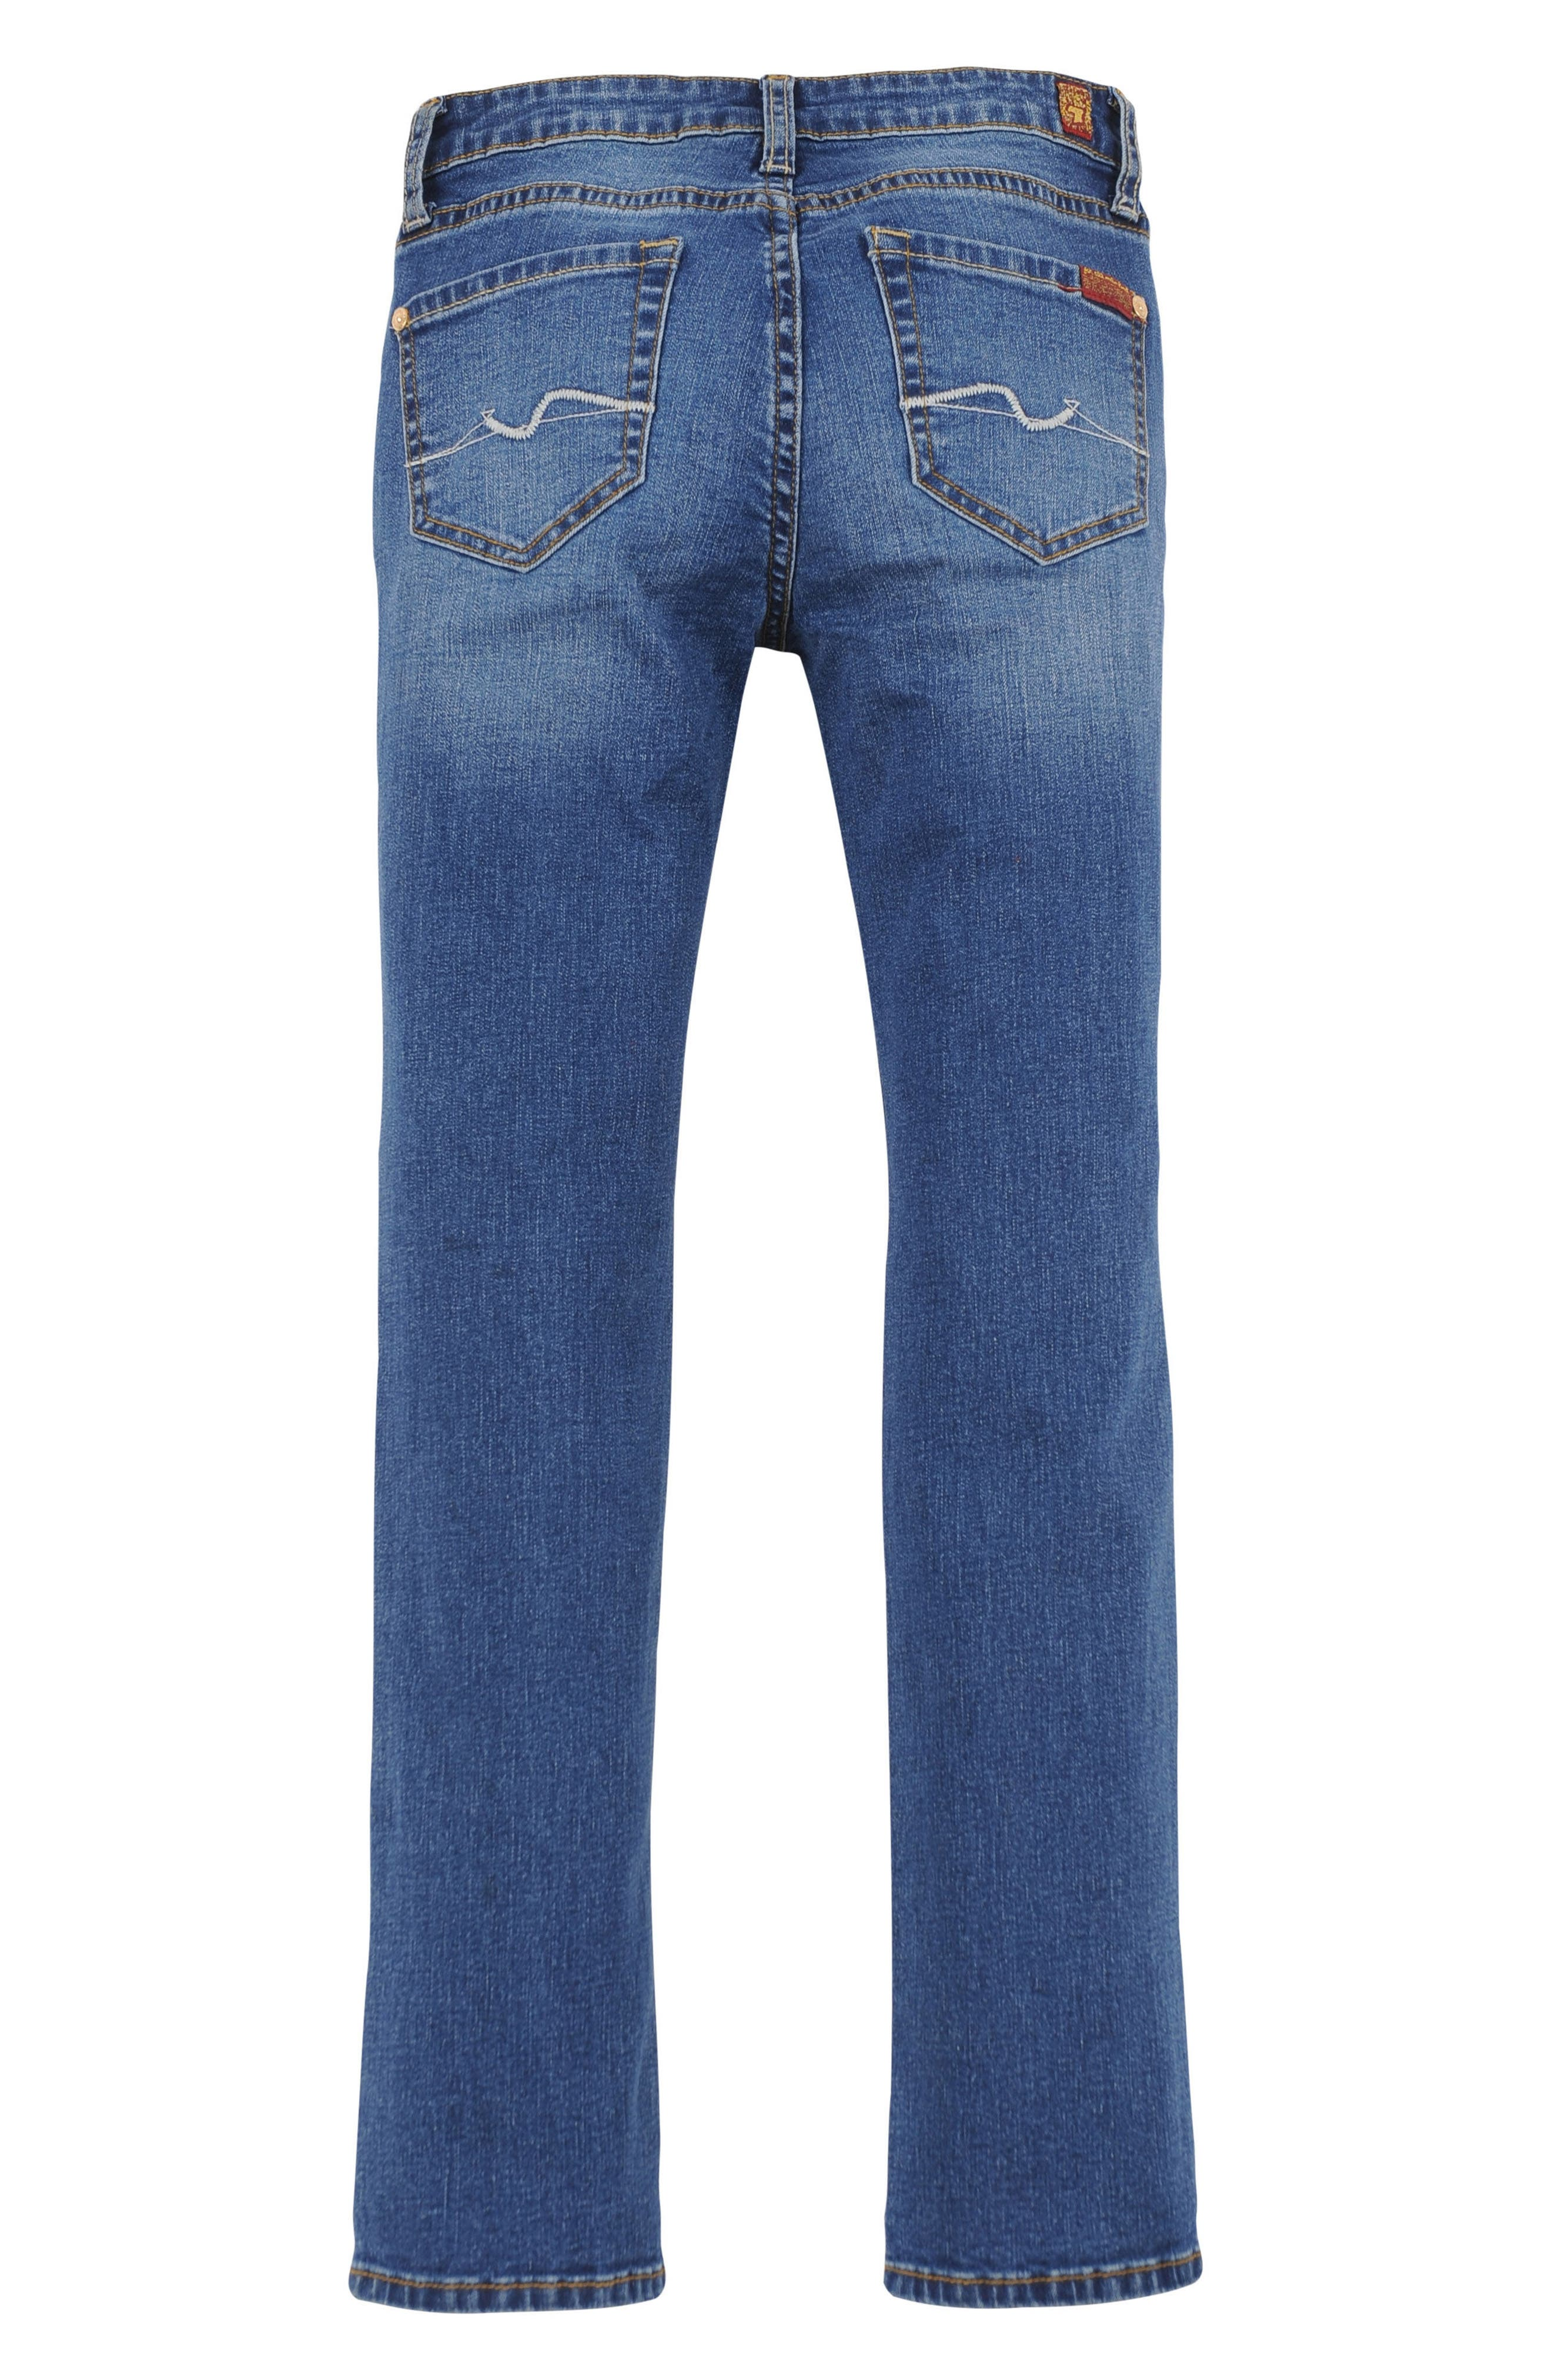 Slimmy Foolproof Slim Fit Jeans,                             Alternate thumbnail 2, color,                             Bristol